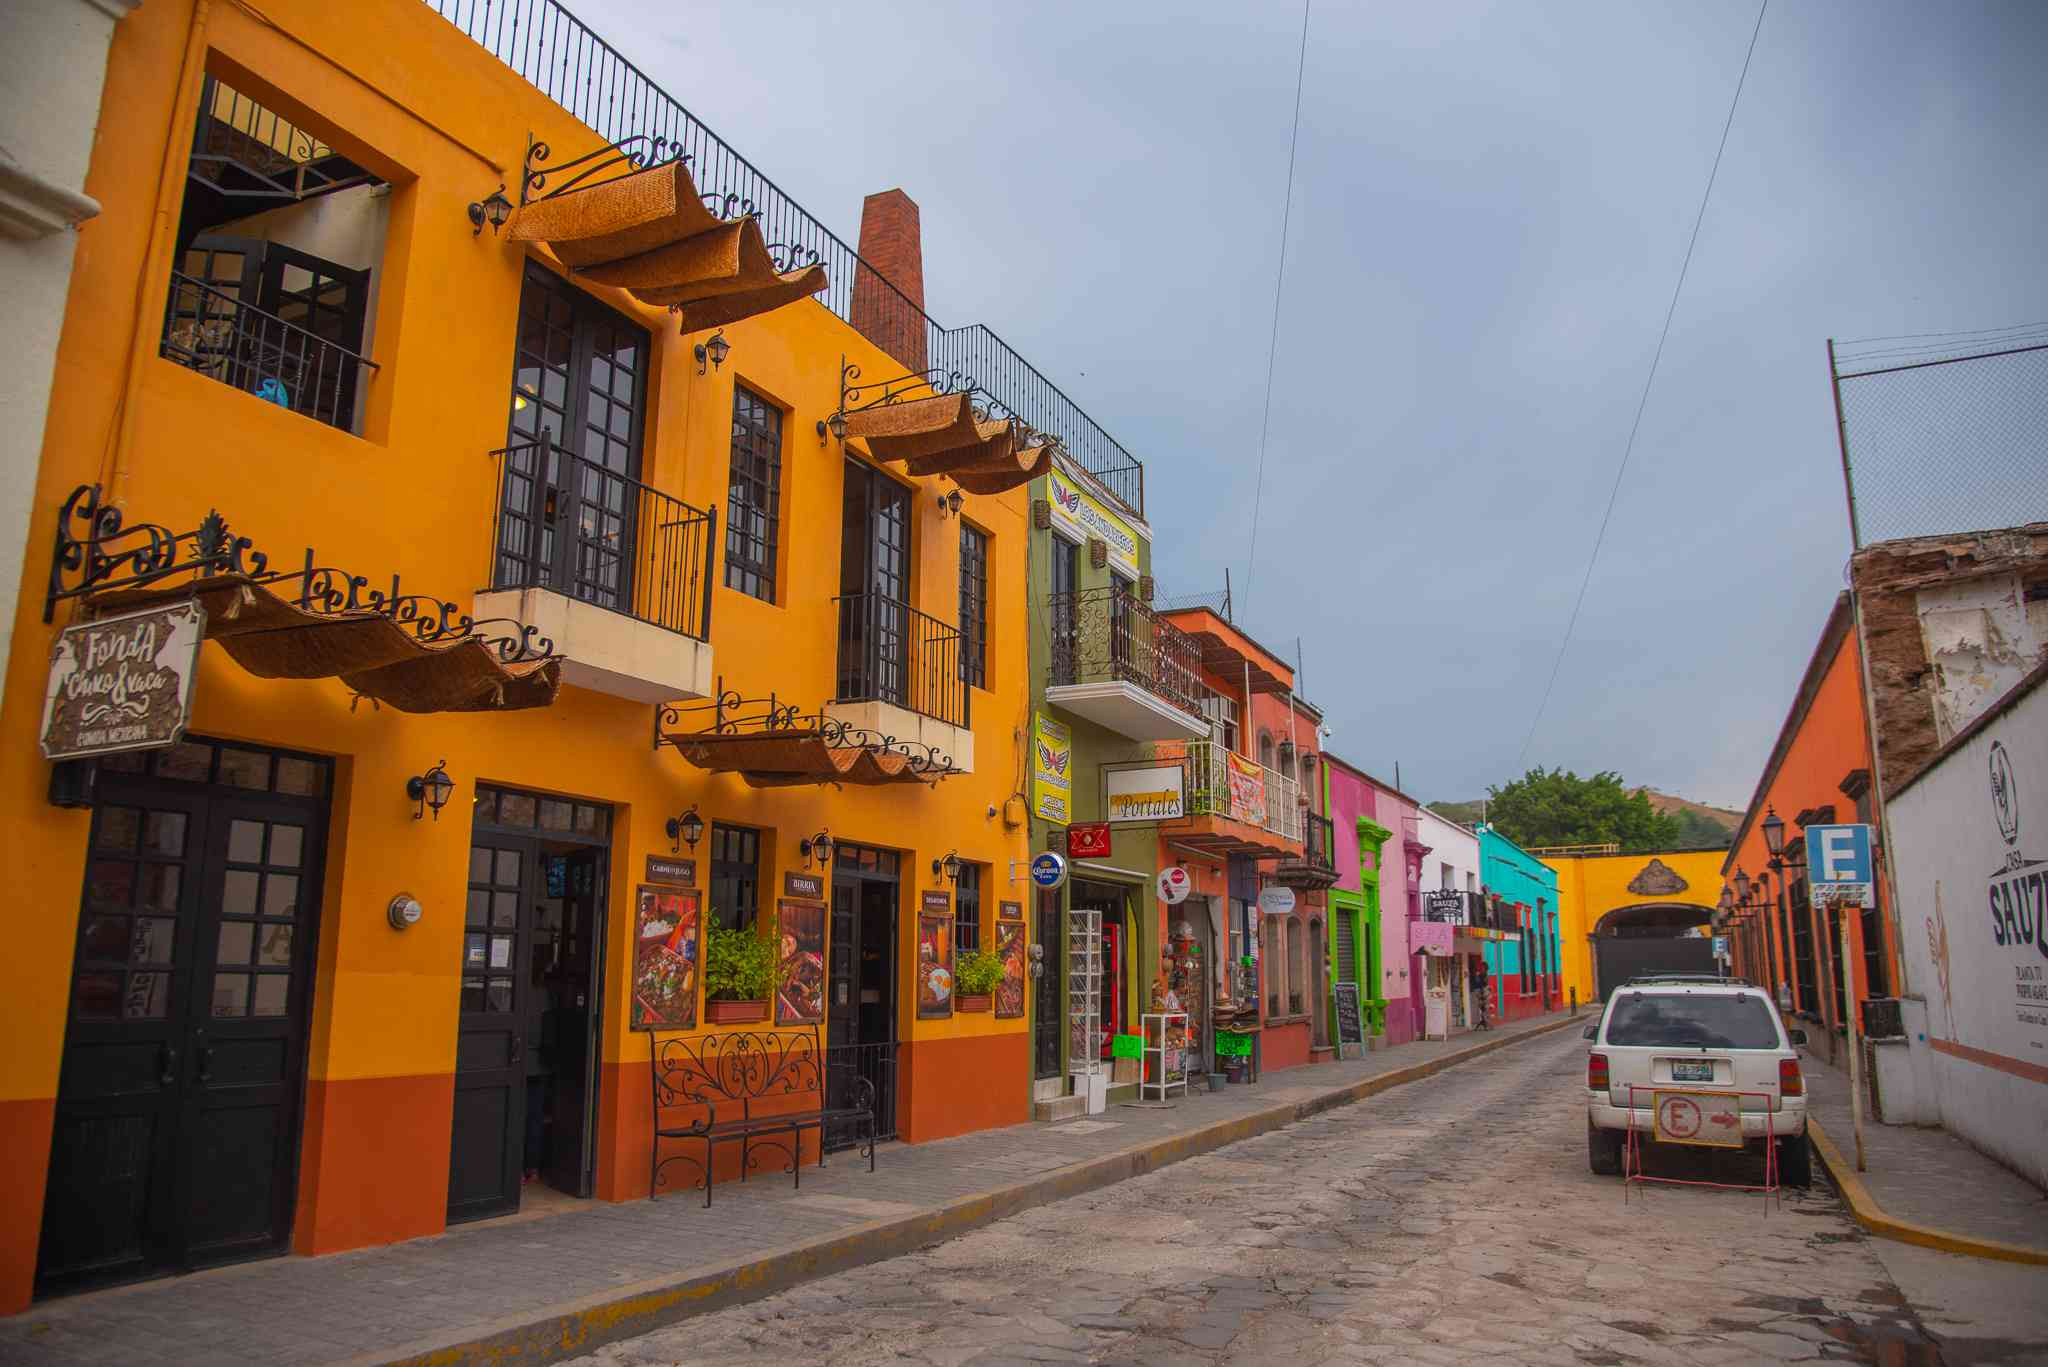 Colorful buildings in Tequila, Mexico